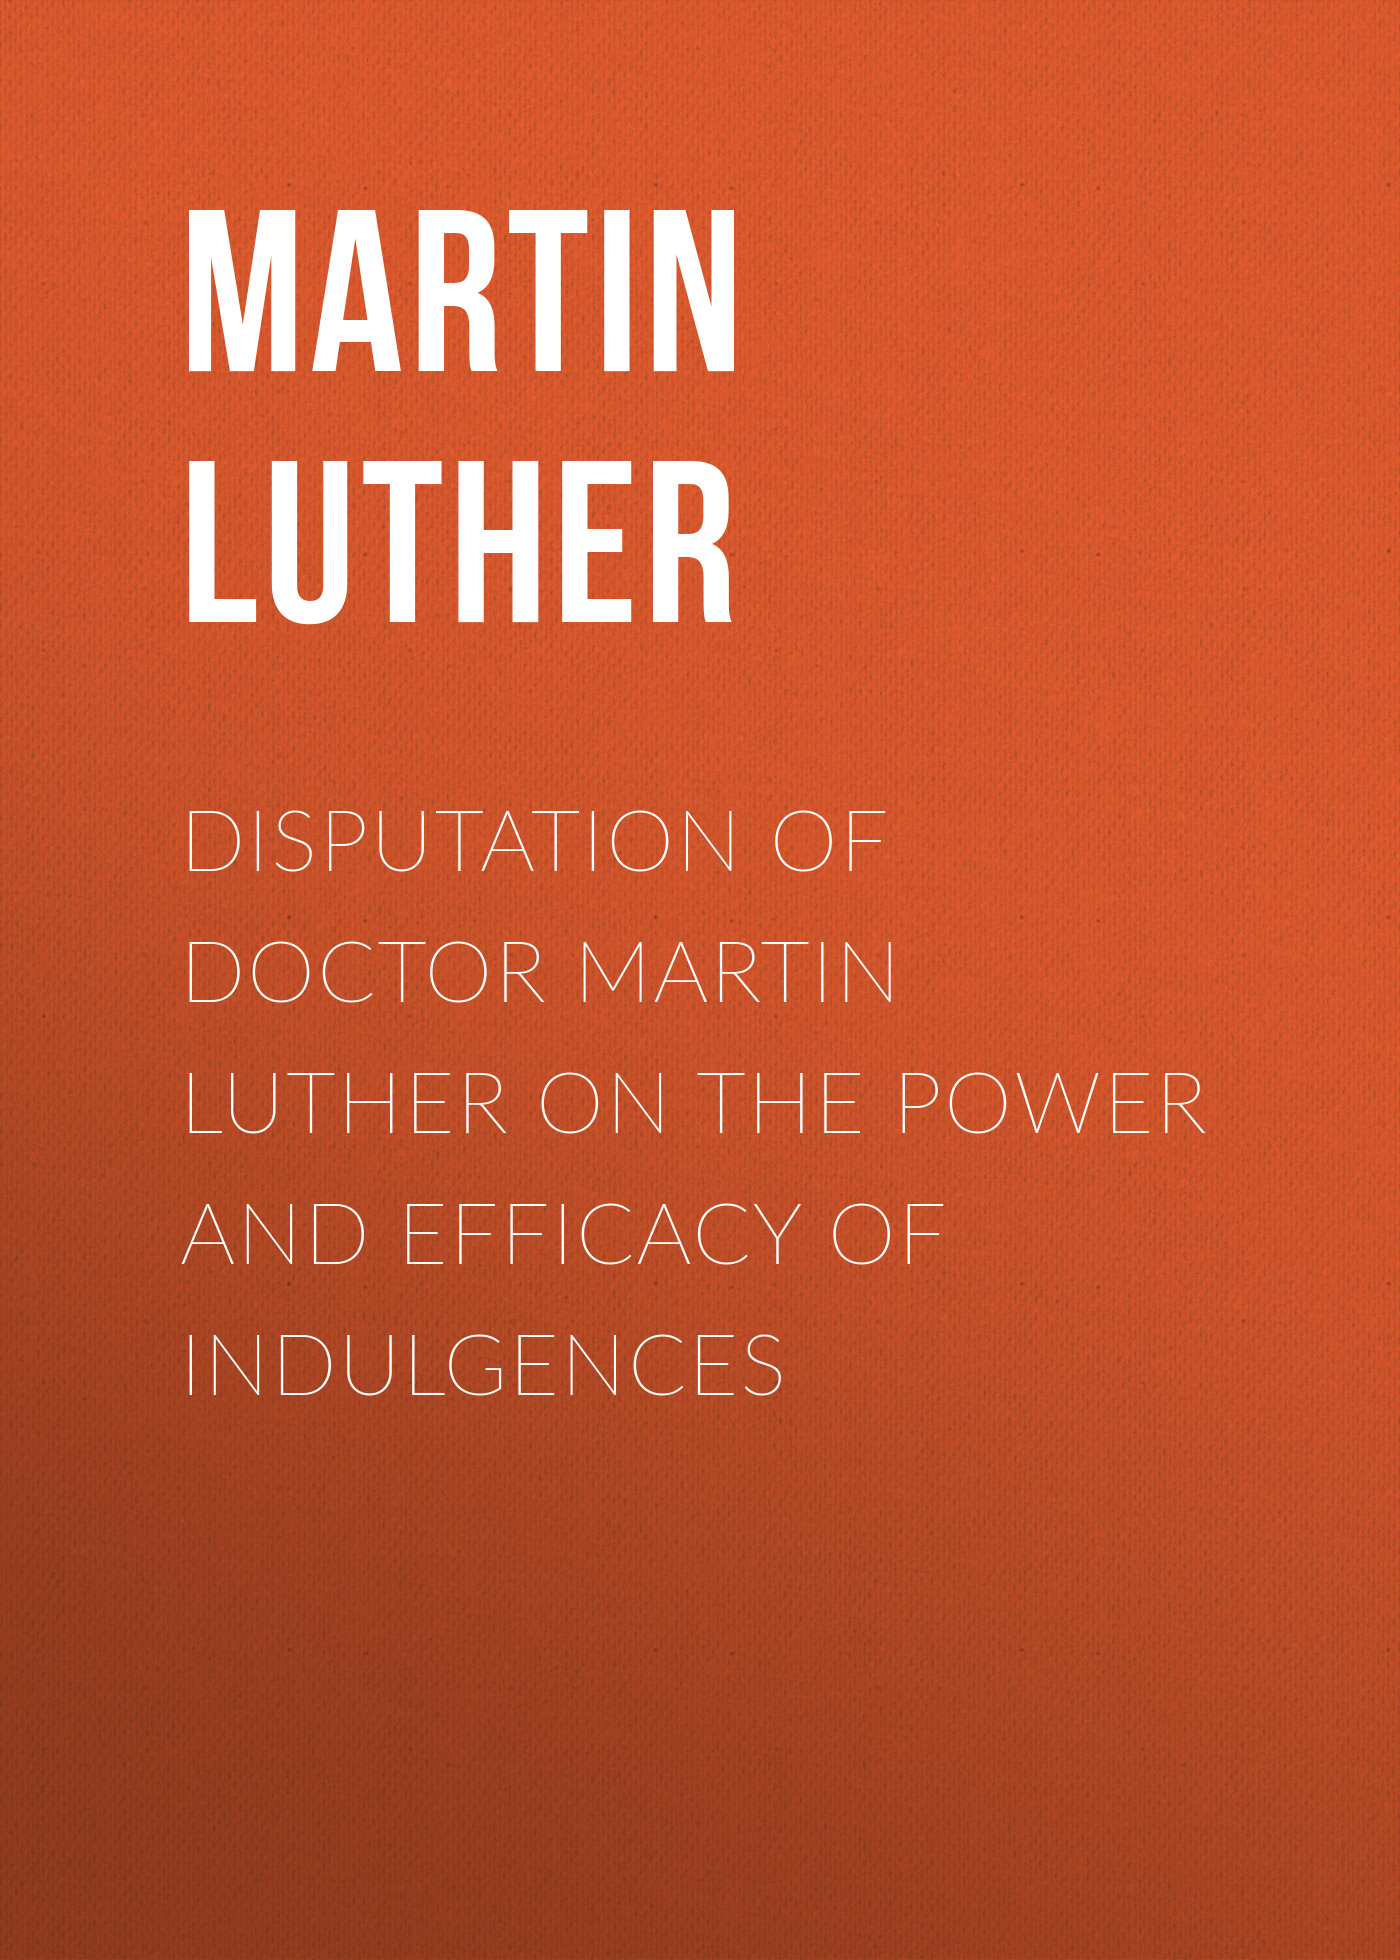 Фото - Martin Luther Disputation of Doctor Martin Luther on the Power and Efficacy of Indulgences m luther luther s letters to women